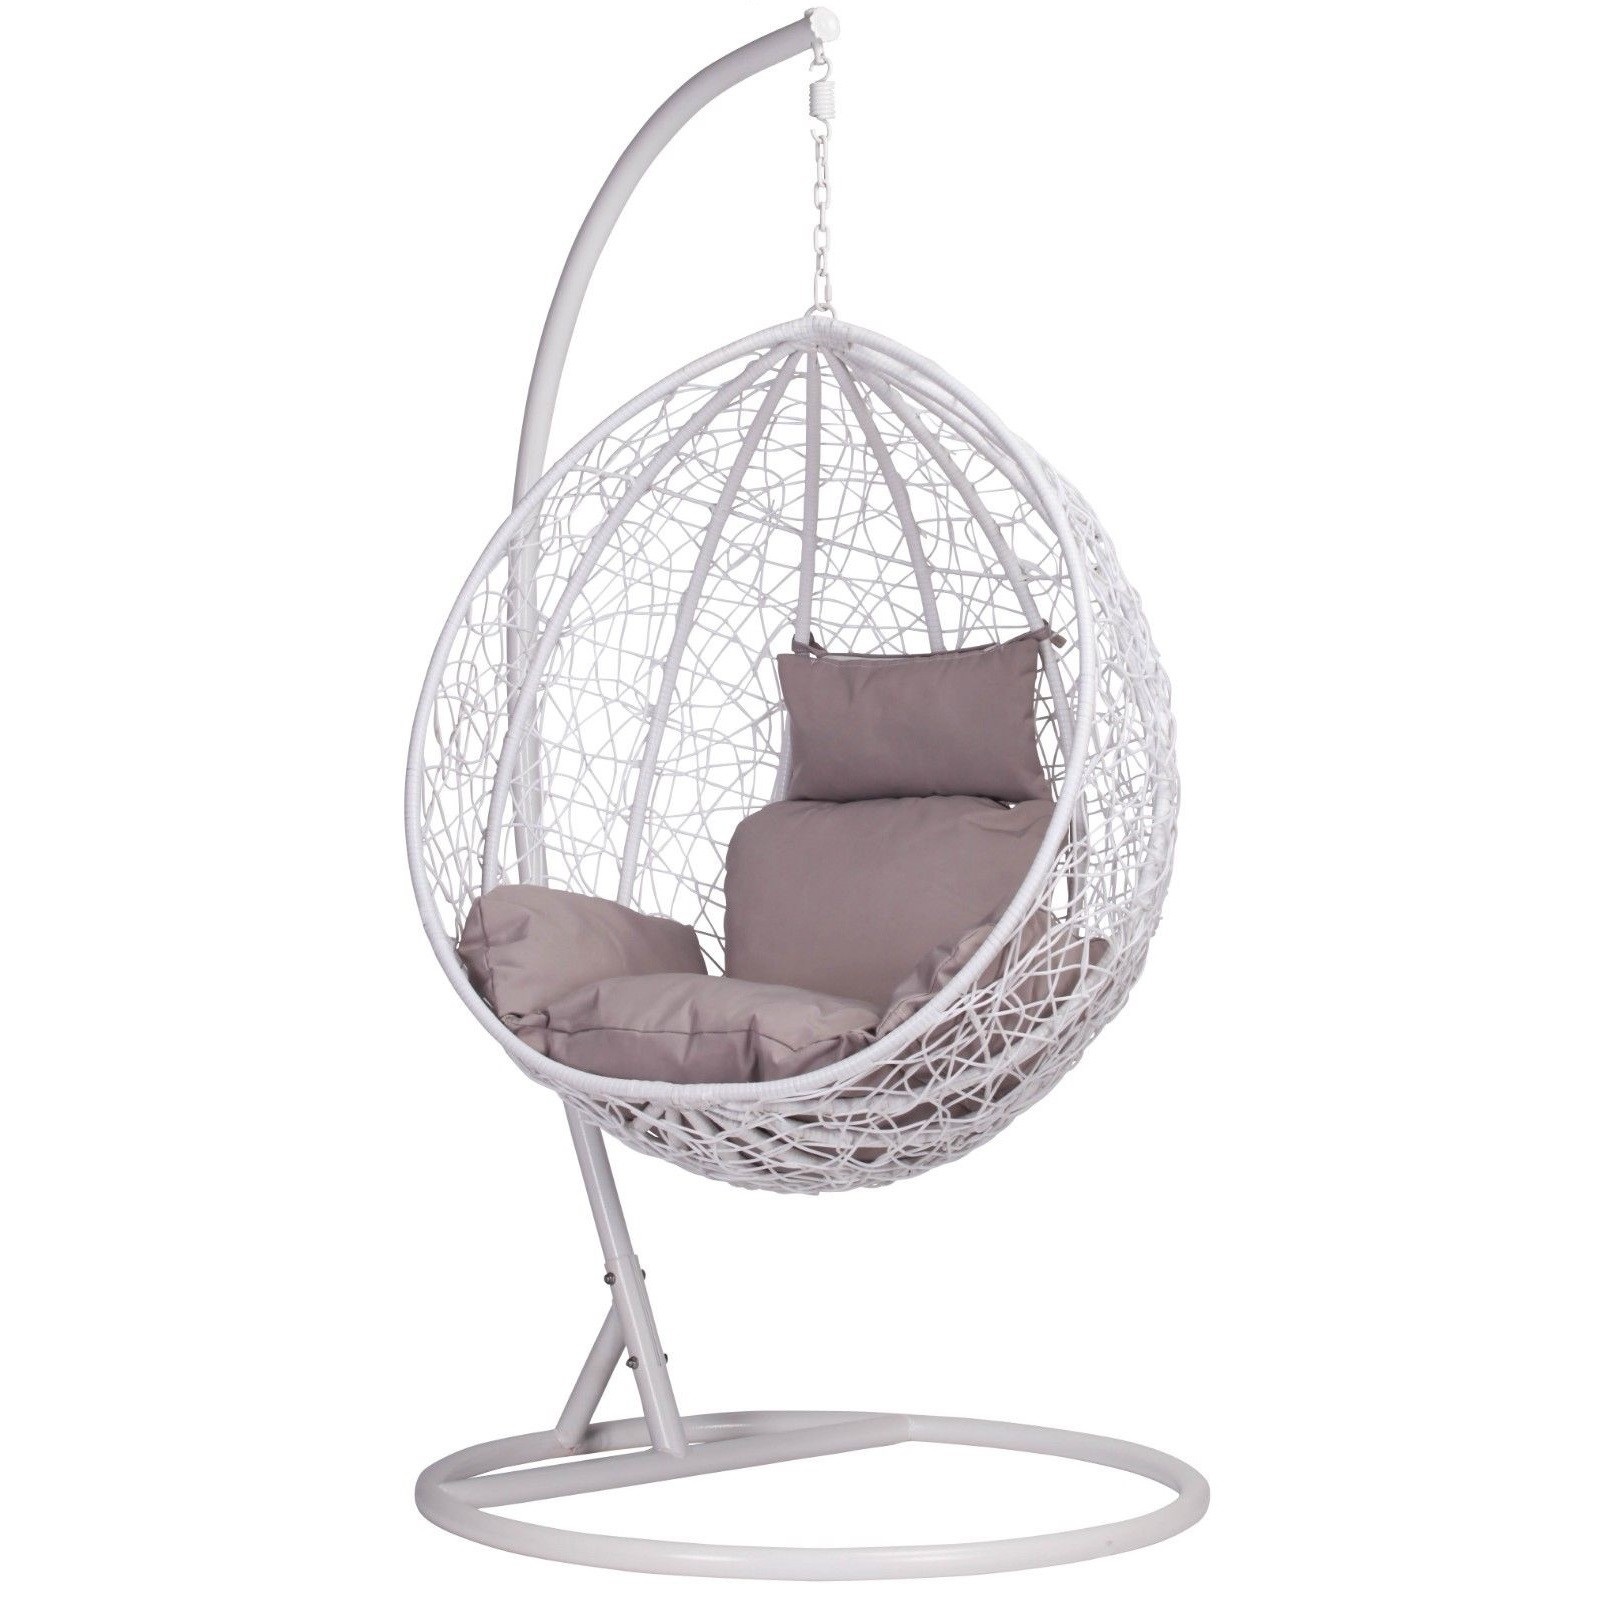 White Rattan Swing Weave Patio Garden Hanging Egg Chair ...